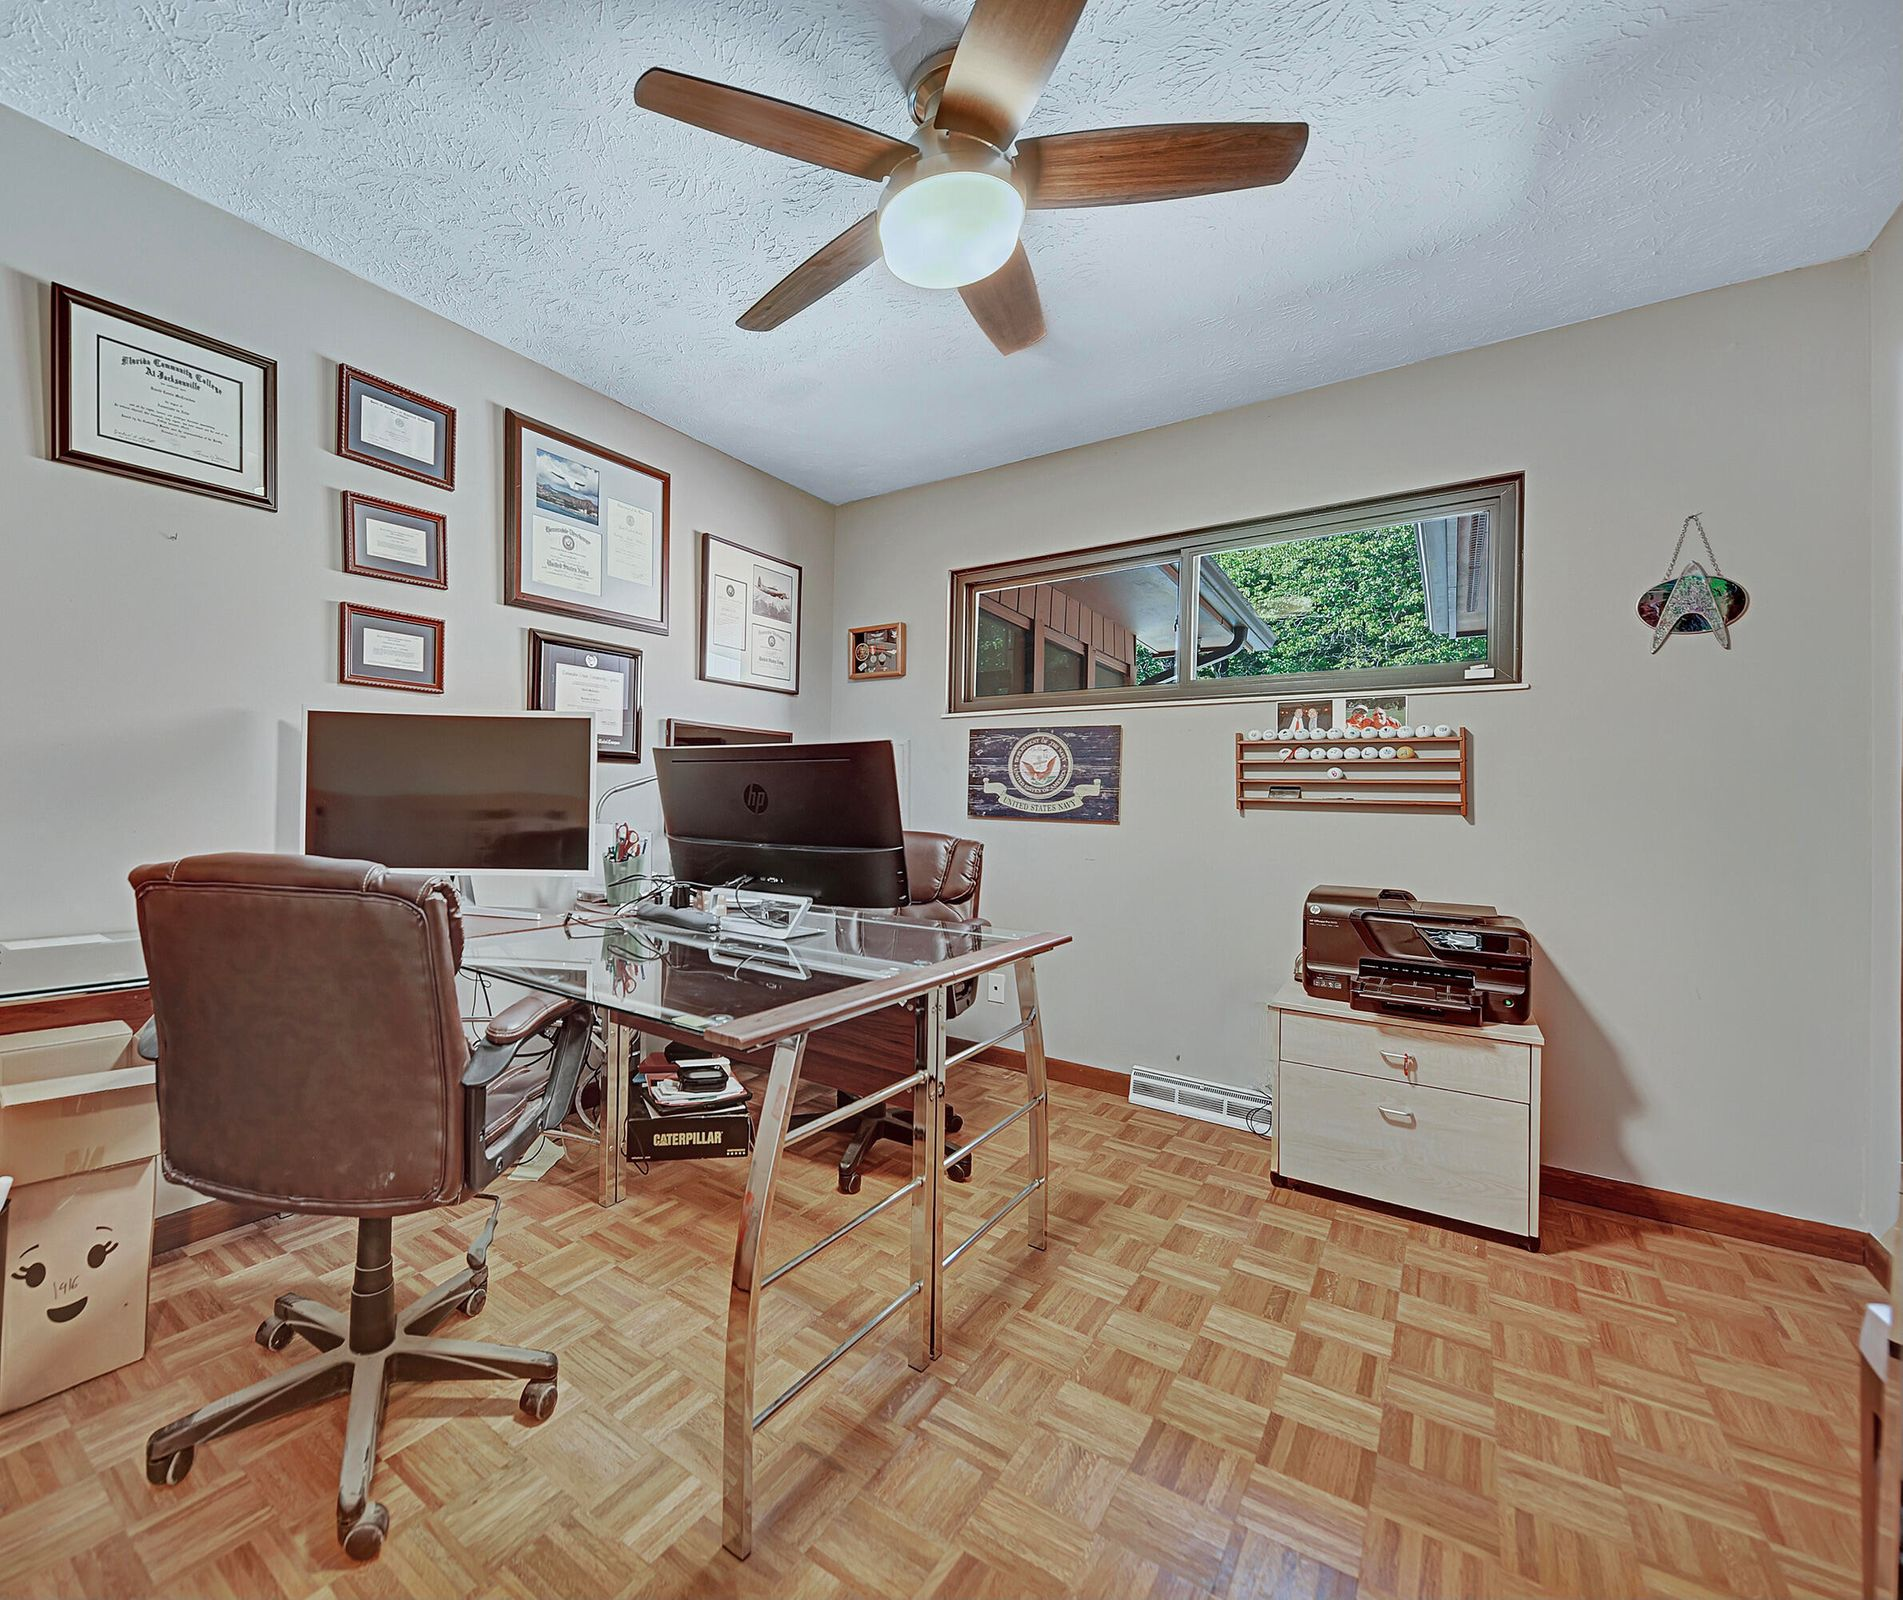 4TH BEDROOM IS USED AS OFFICE